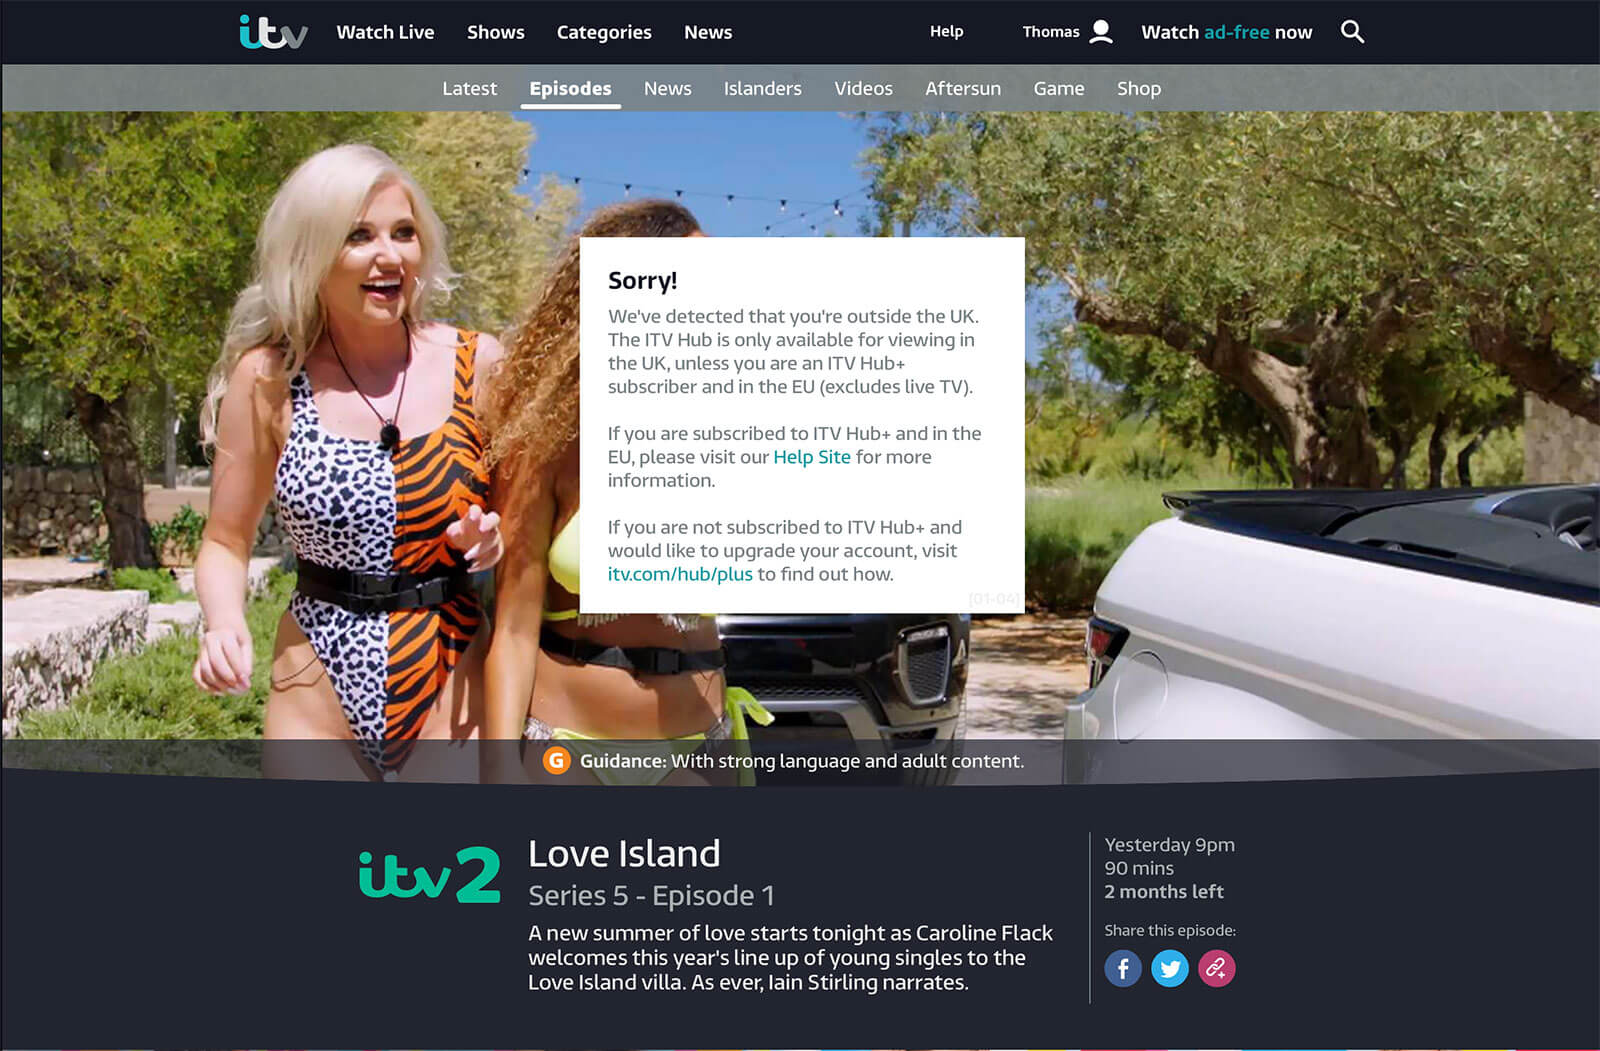 ITV Hubb blocked